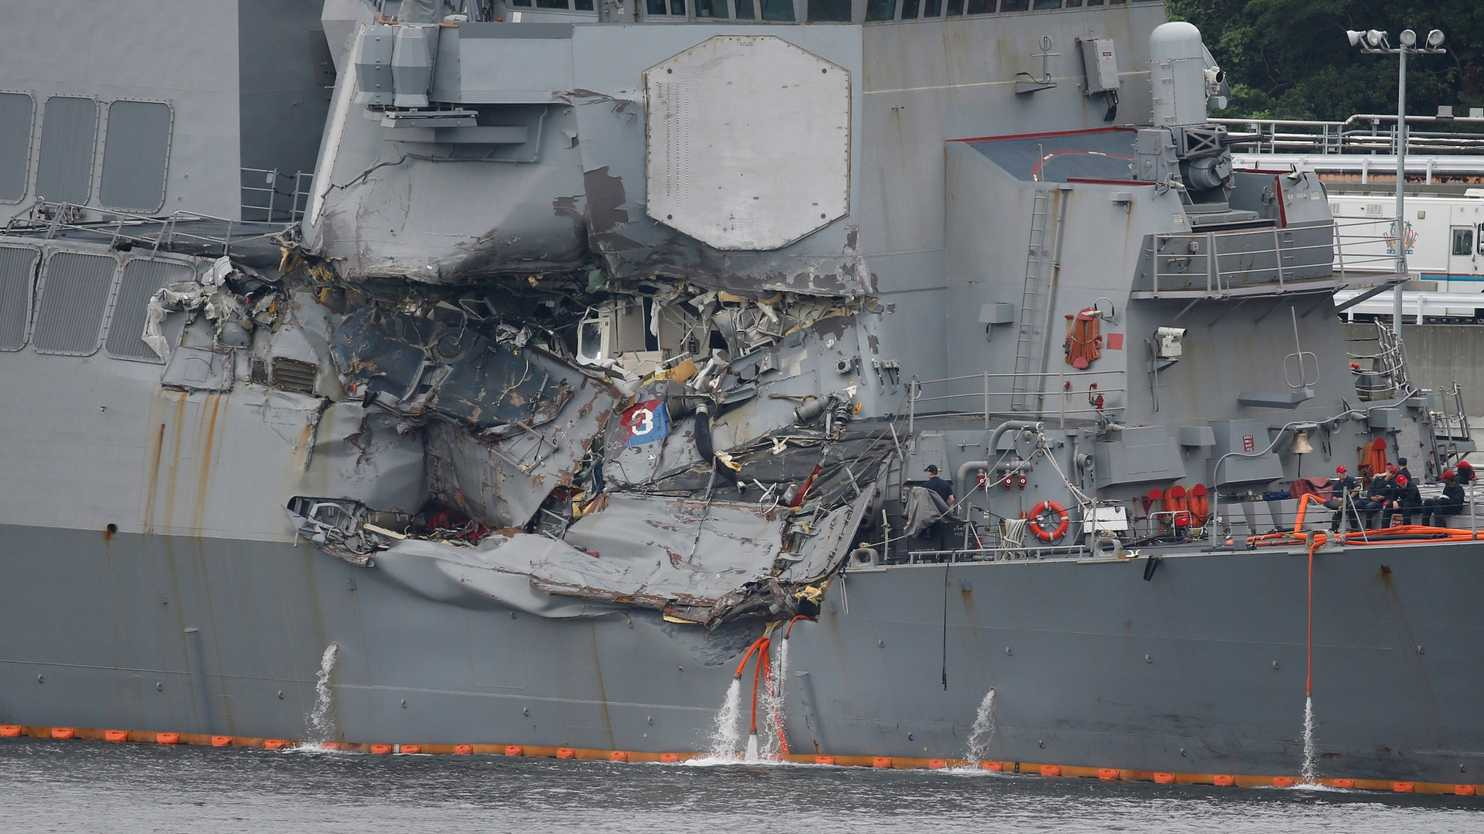 Admiral defends Navy after disasters at sea: 'Other ships weren't having collisions'